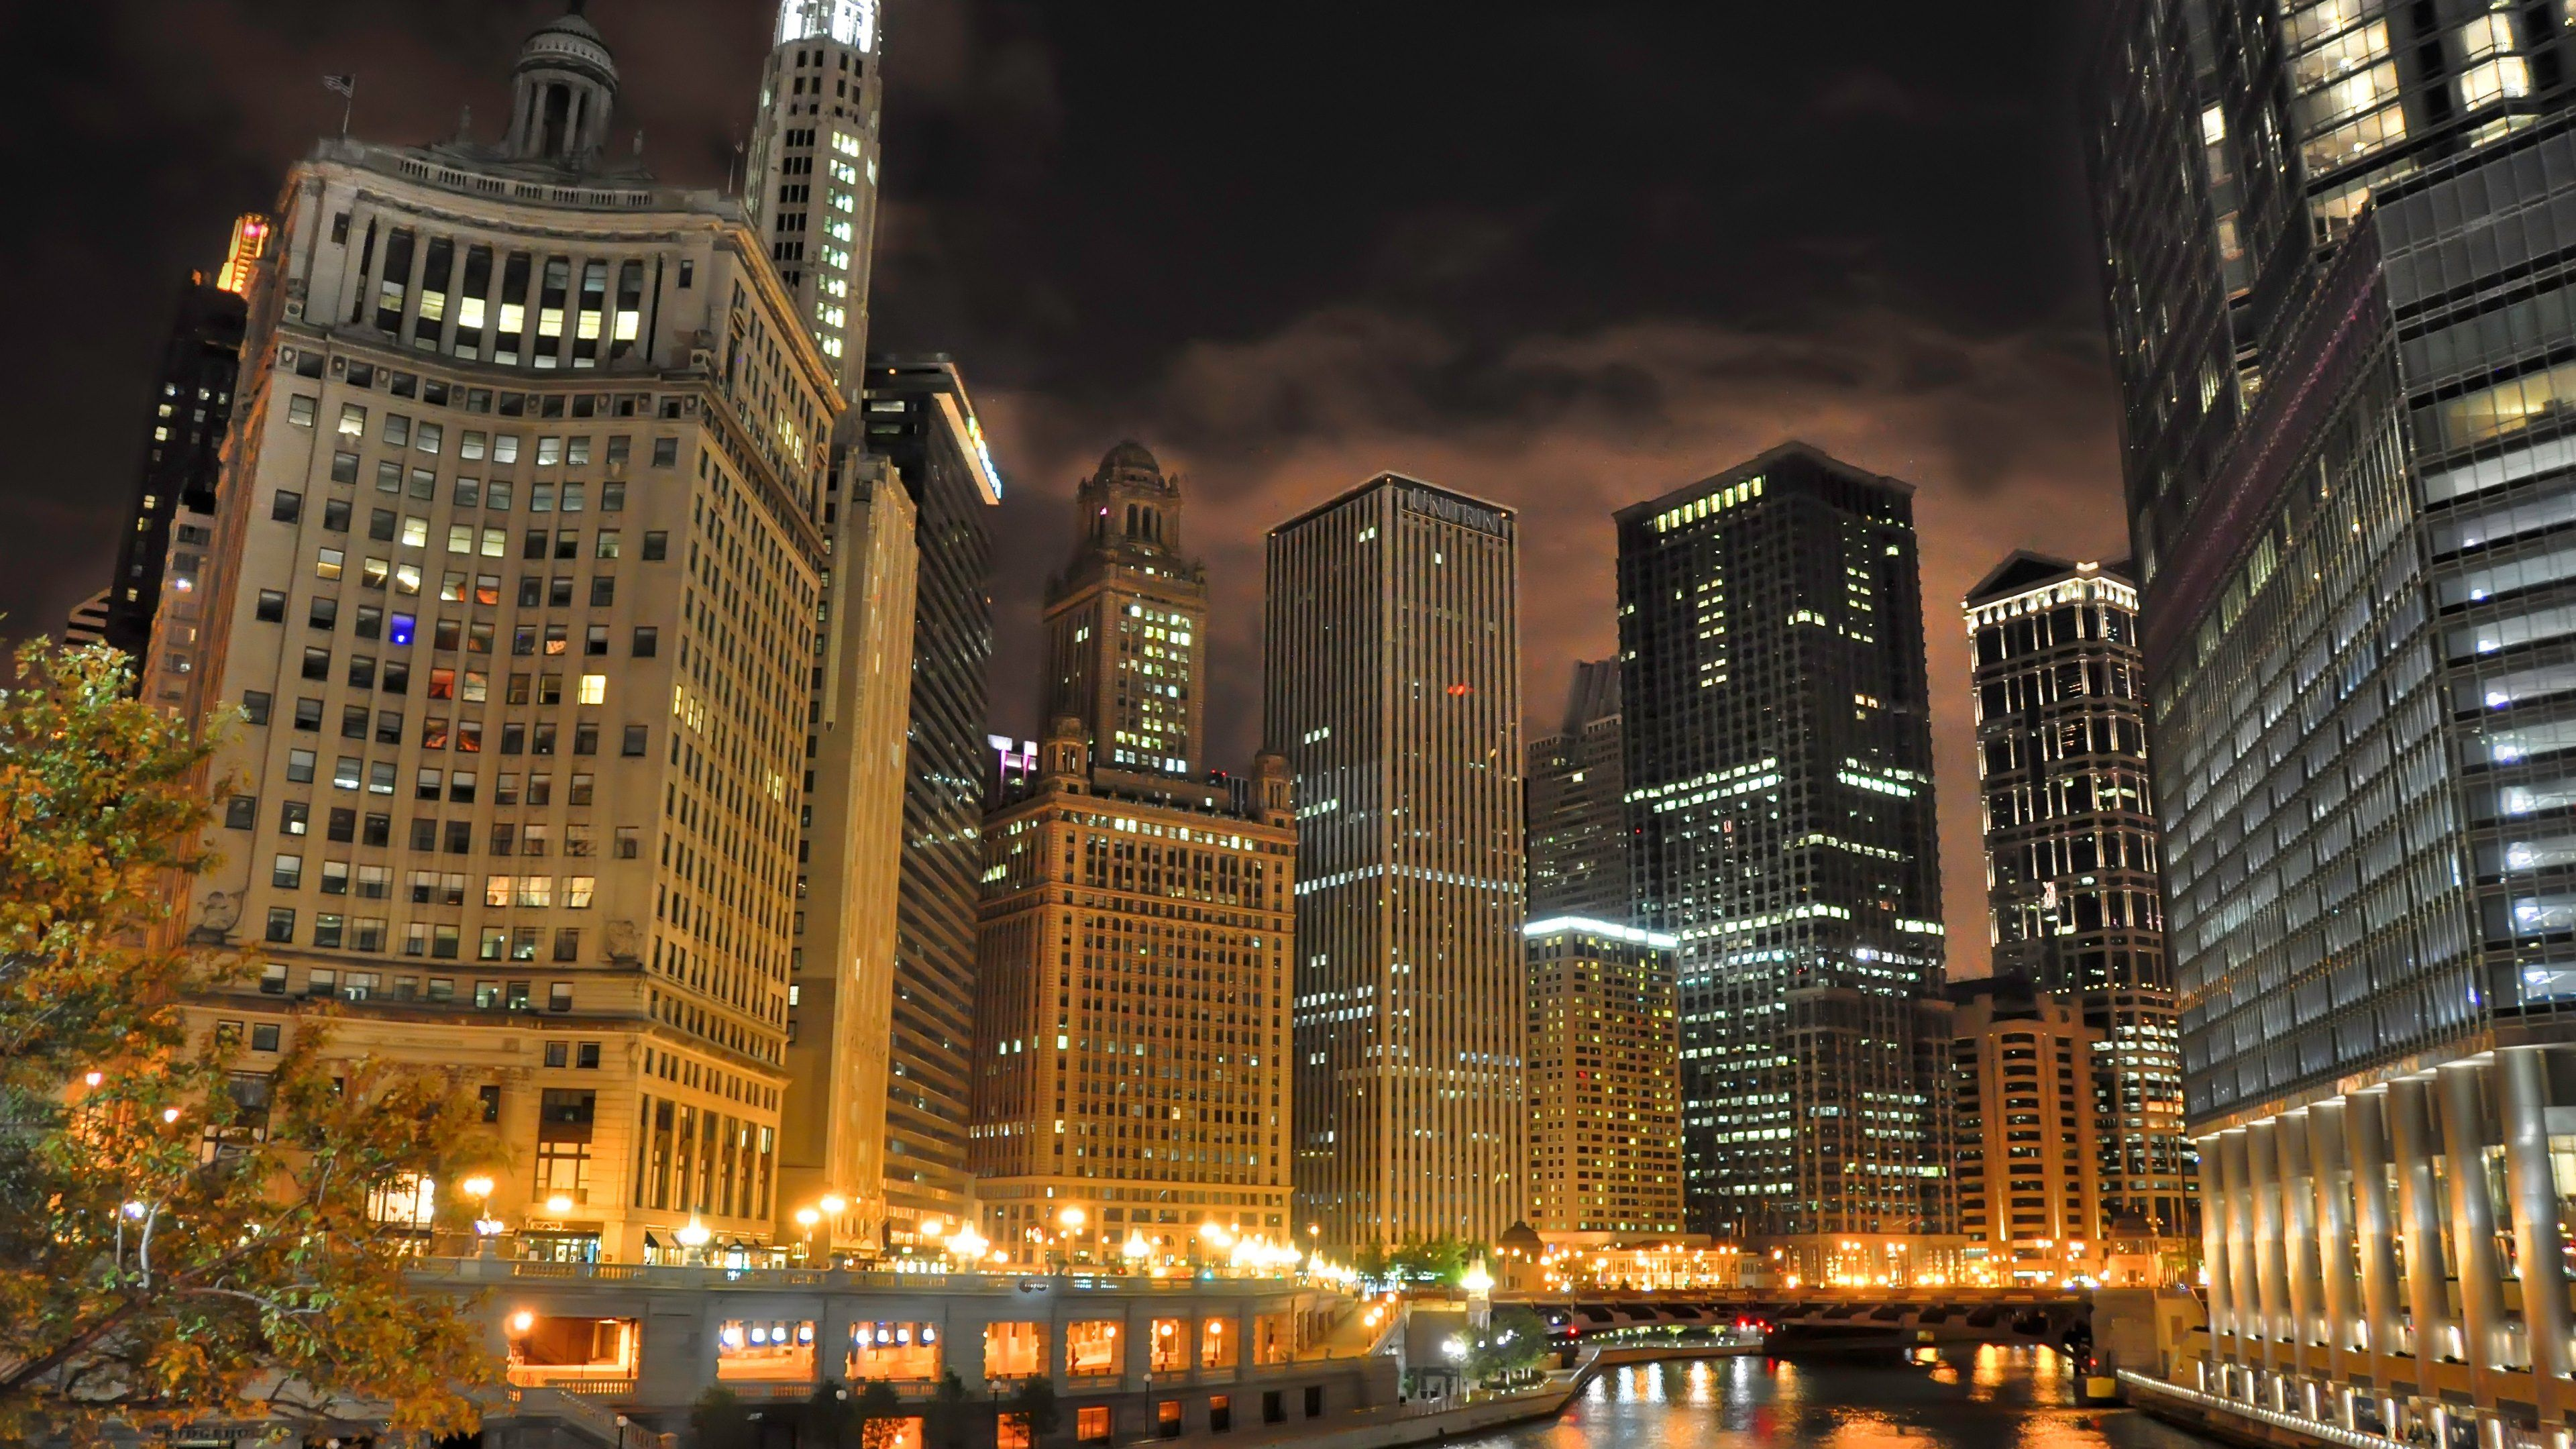 4k Ultra Hd Chicago Wallpapers Top Free 4k Ultra Hd Chicago